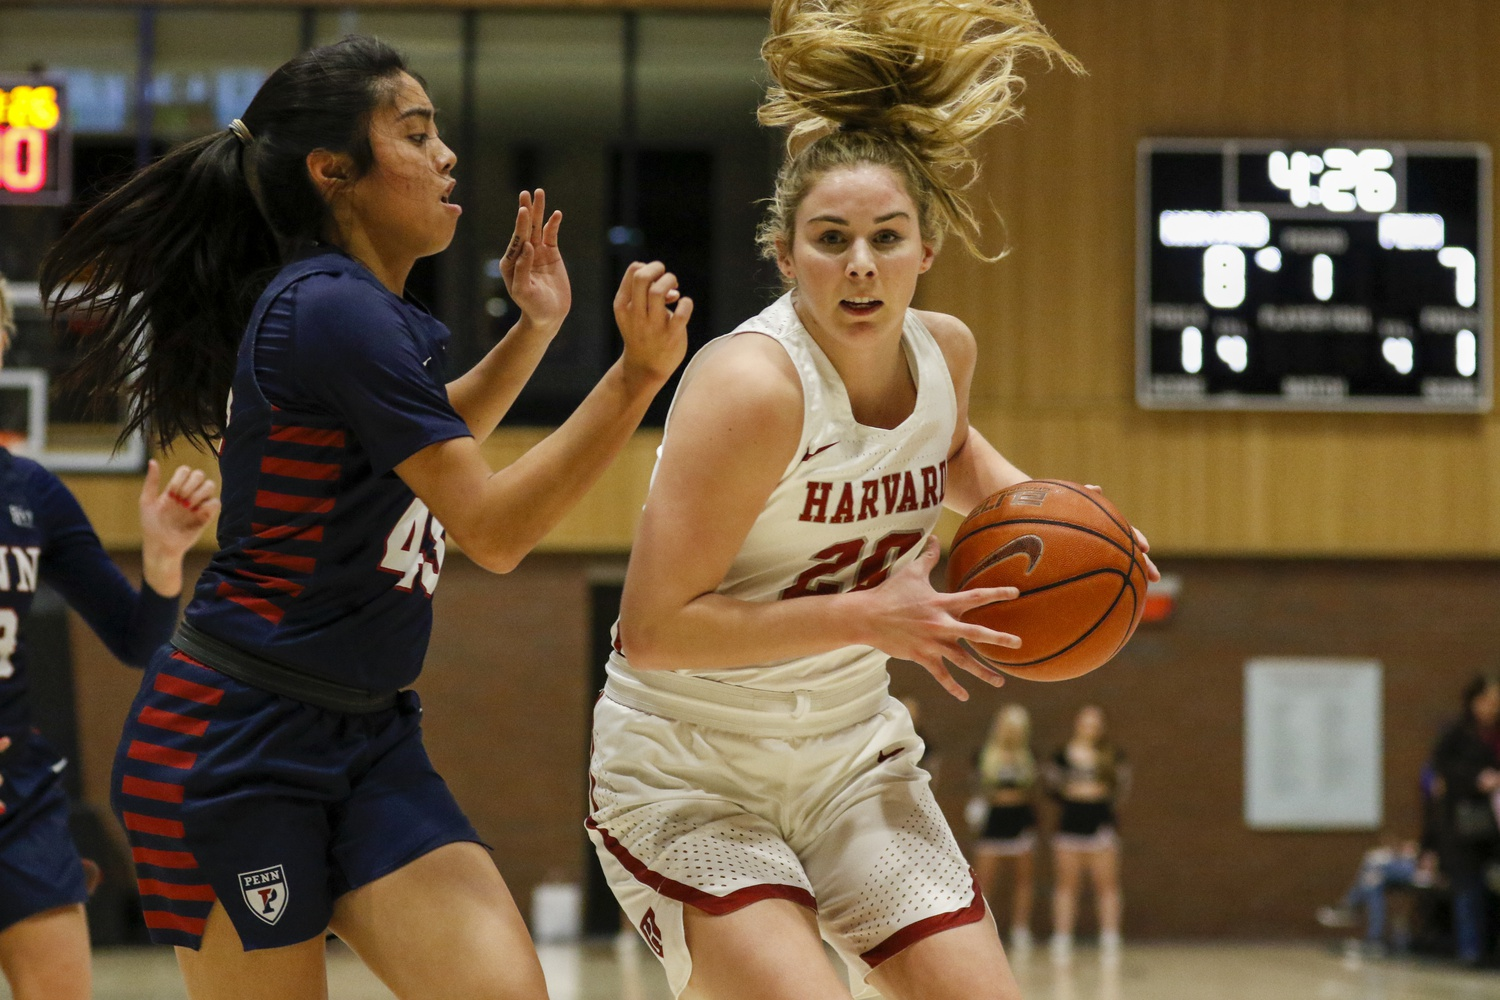 Lola Mullaney looks to drive in Harvard's big win over Penn earlier this season. She closed the season strong, scoring 33 points in the Crimson's final two games.